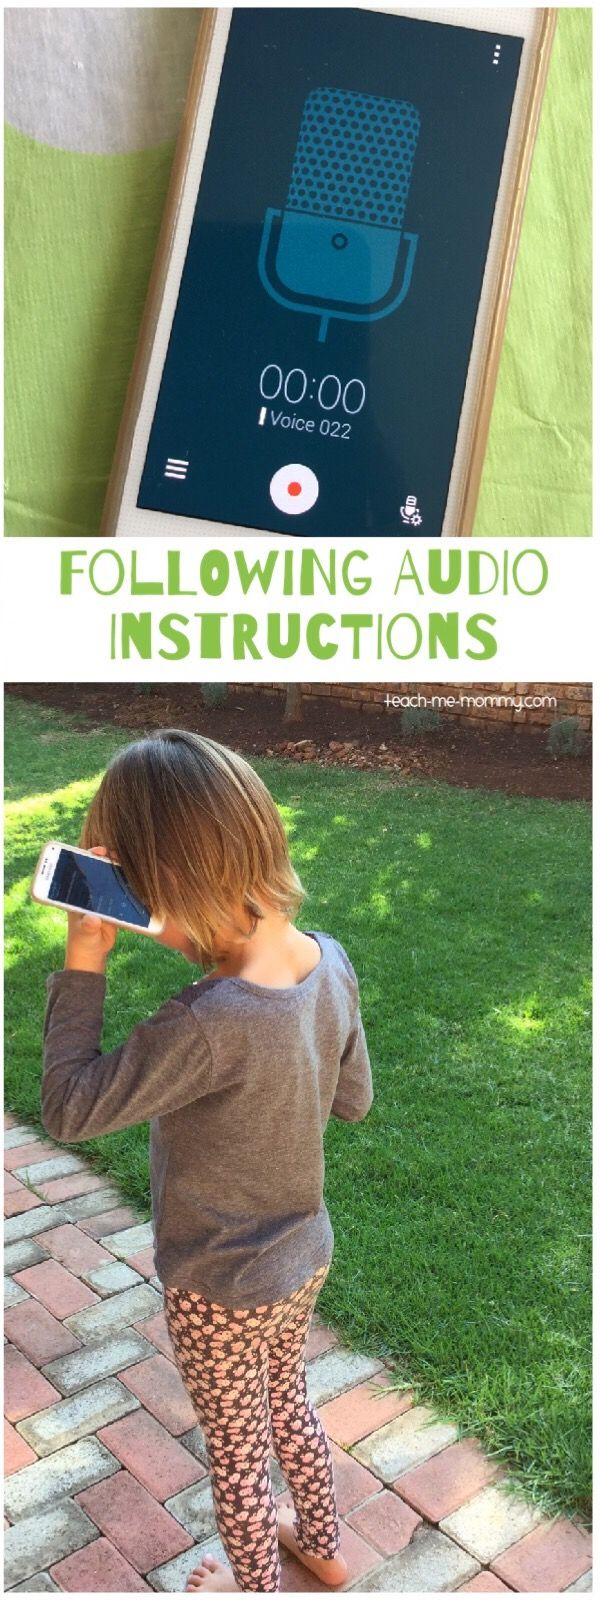 Following Audio Instructions Outside Use technology for this fun activity outside: follow recorded audio instructions! Kids love to record their own too!